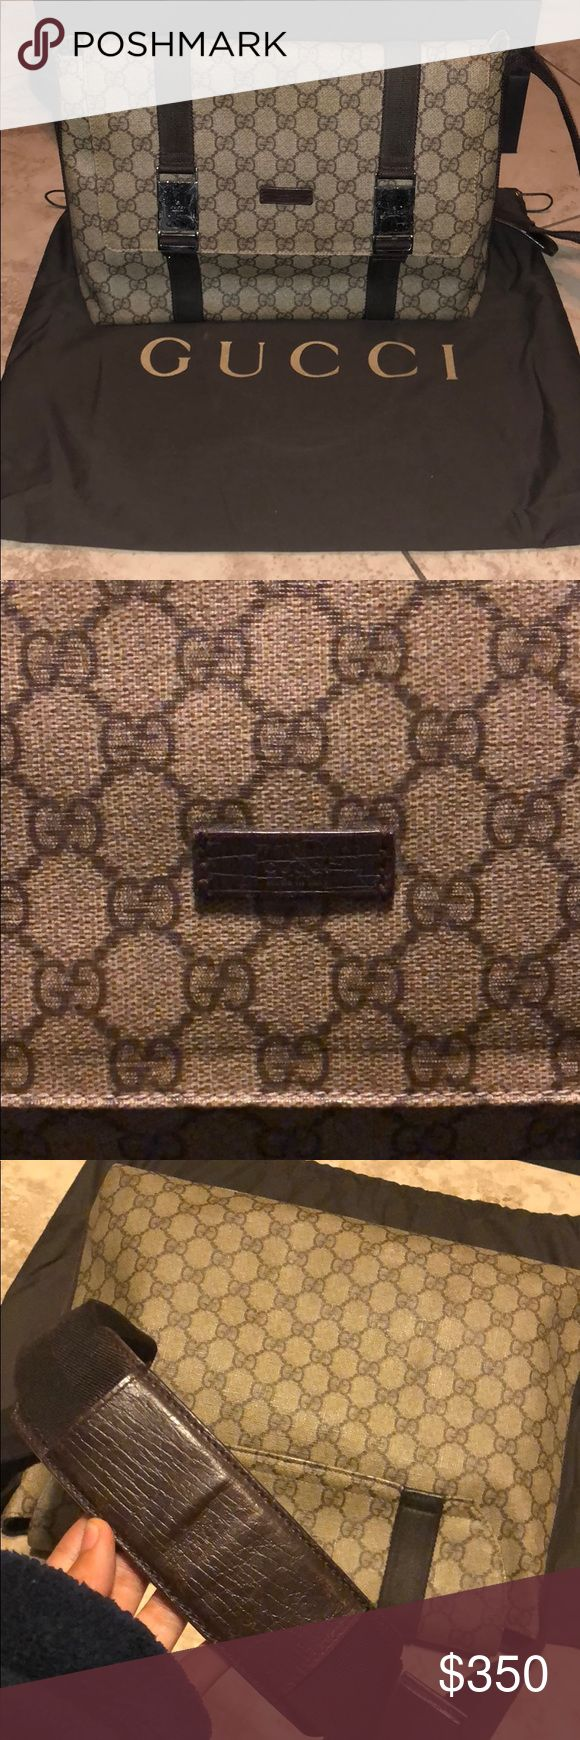 Gucci messenger bag Dust bag included, authentic and in good used condition Gucci Bags